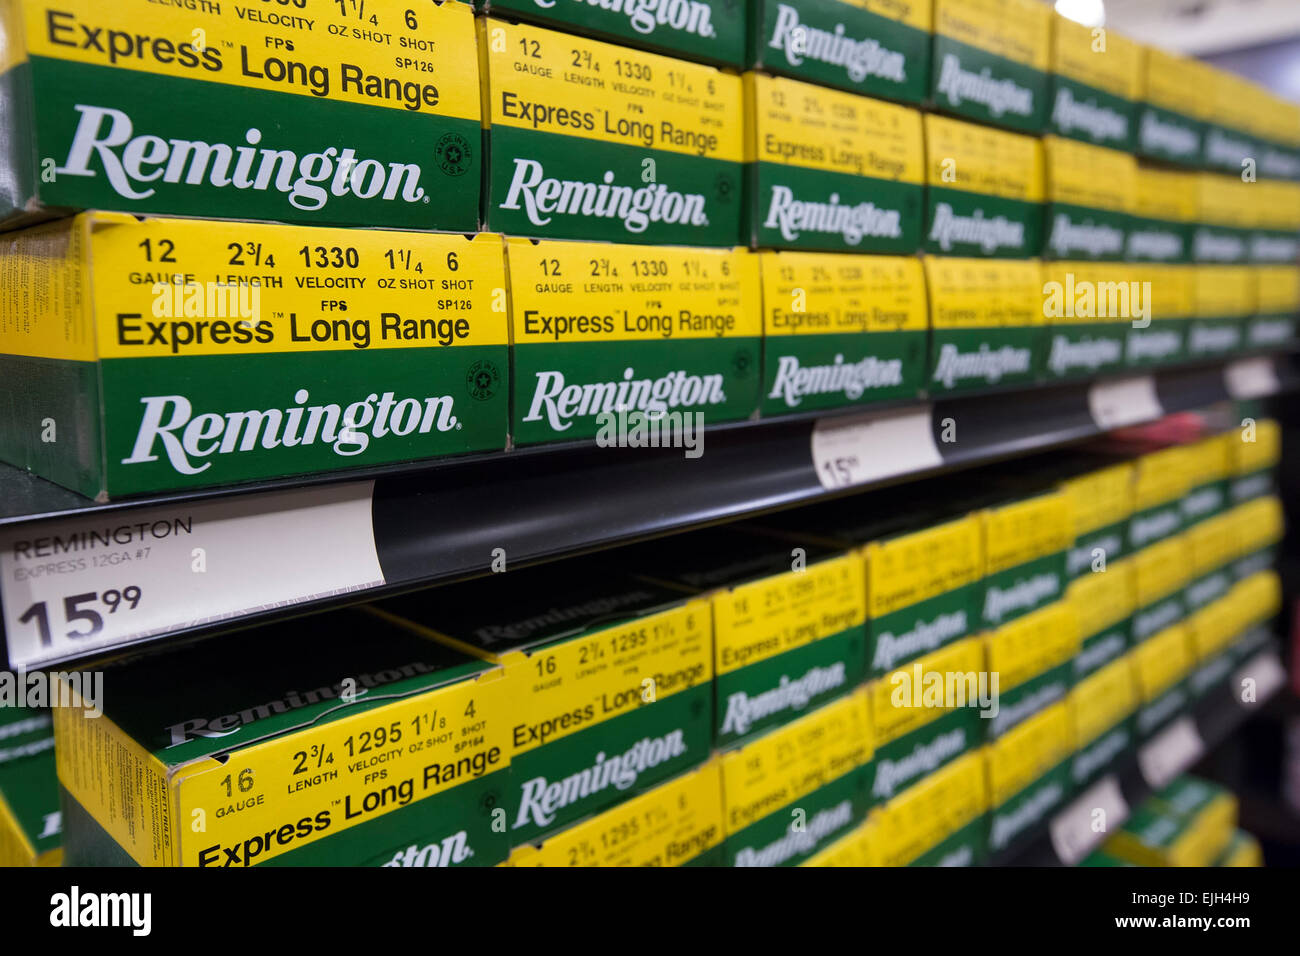 Troy, Michigan -Ammunition on sale at the Field & Steam outdoors store. - Stock Image